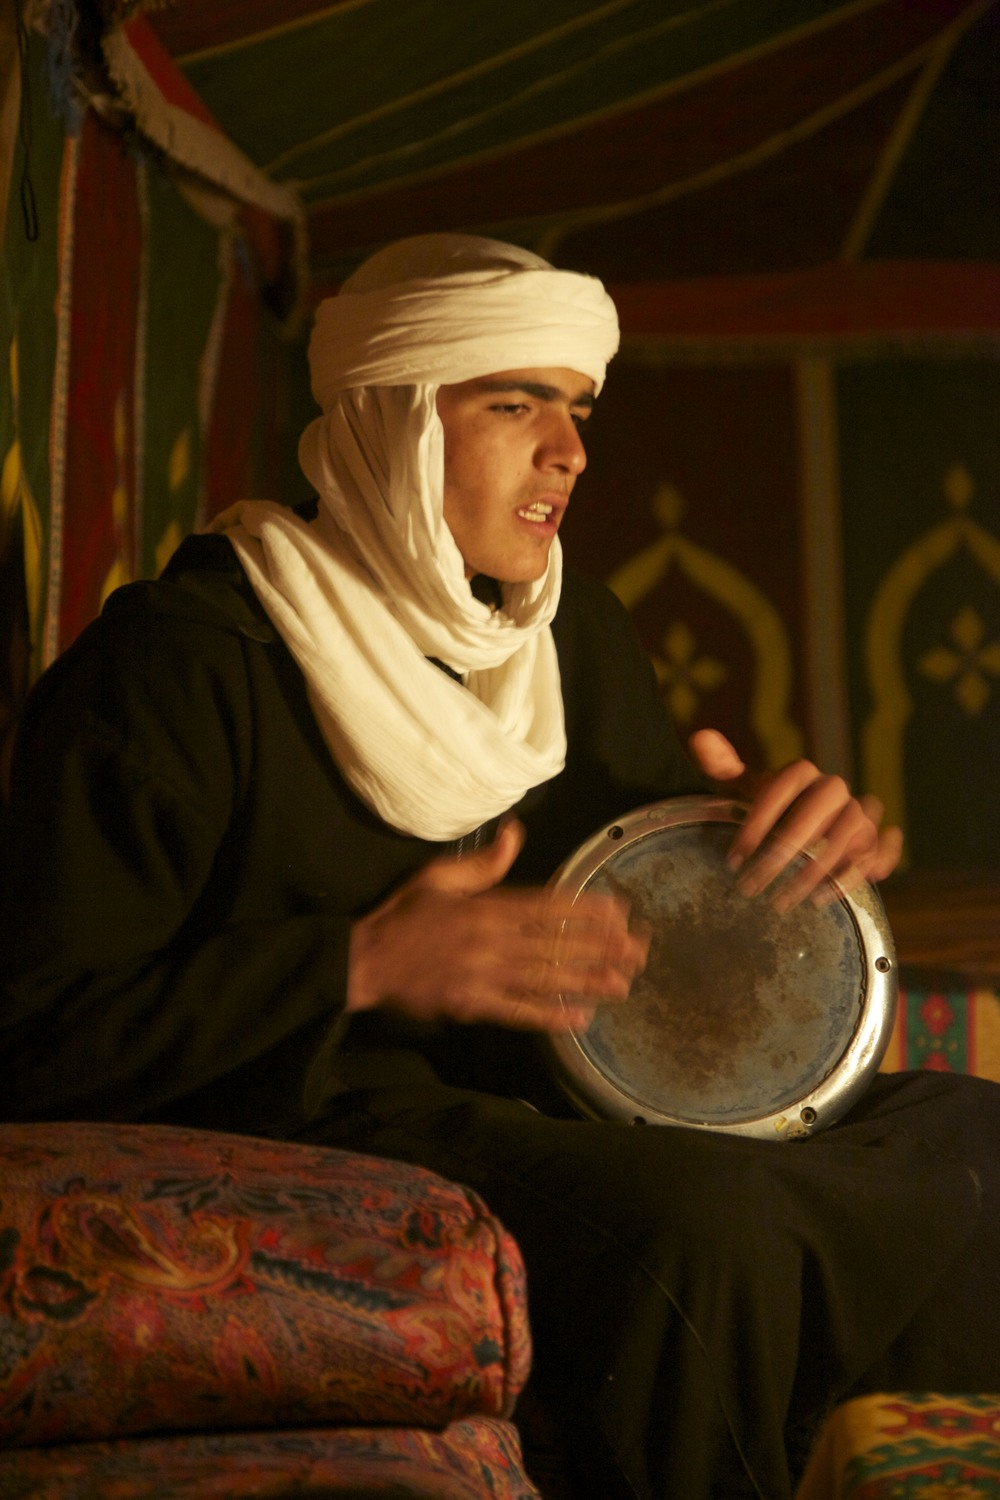 Berber guy playing a drum in the dining tent.